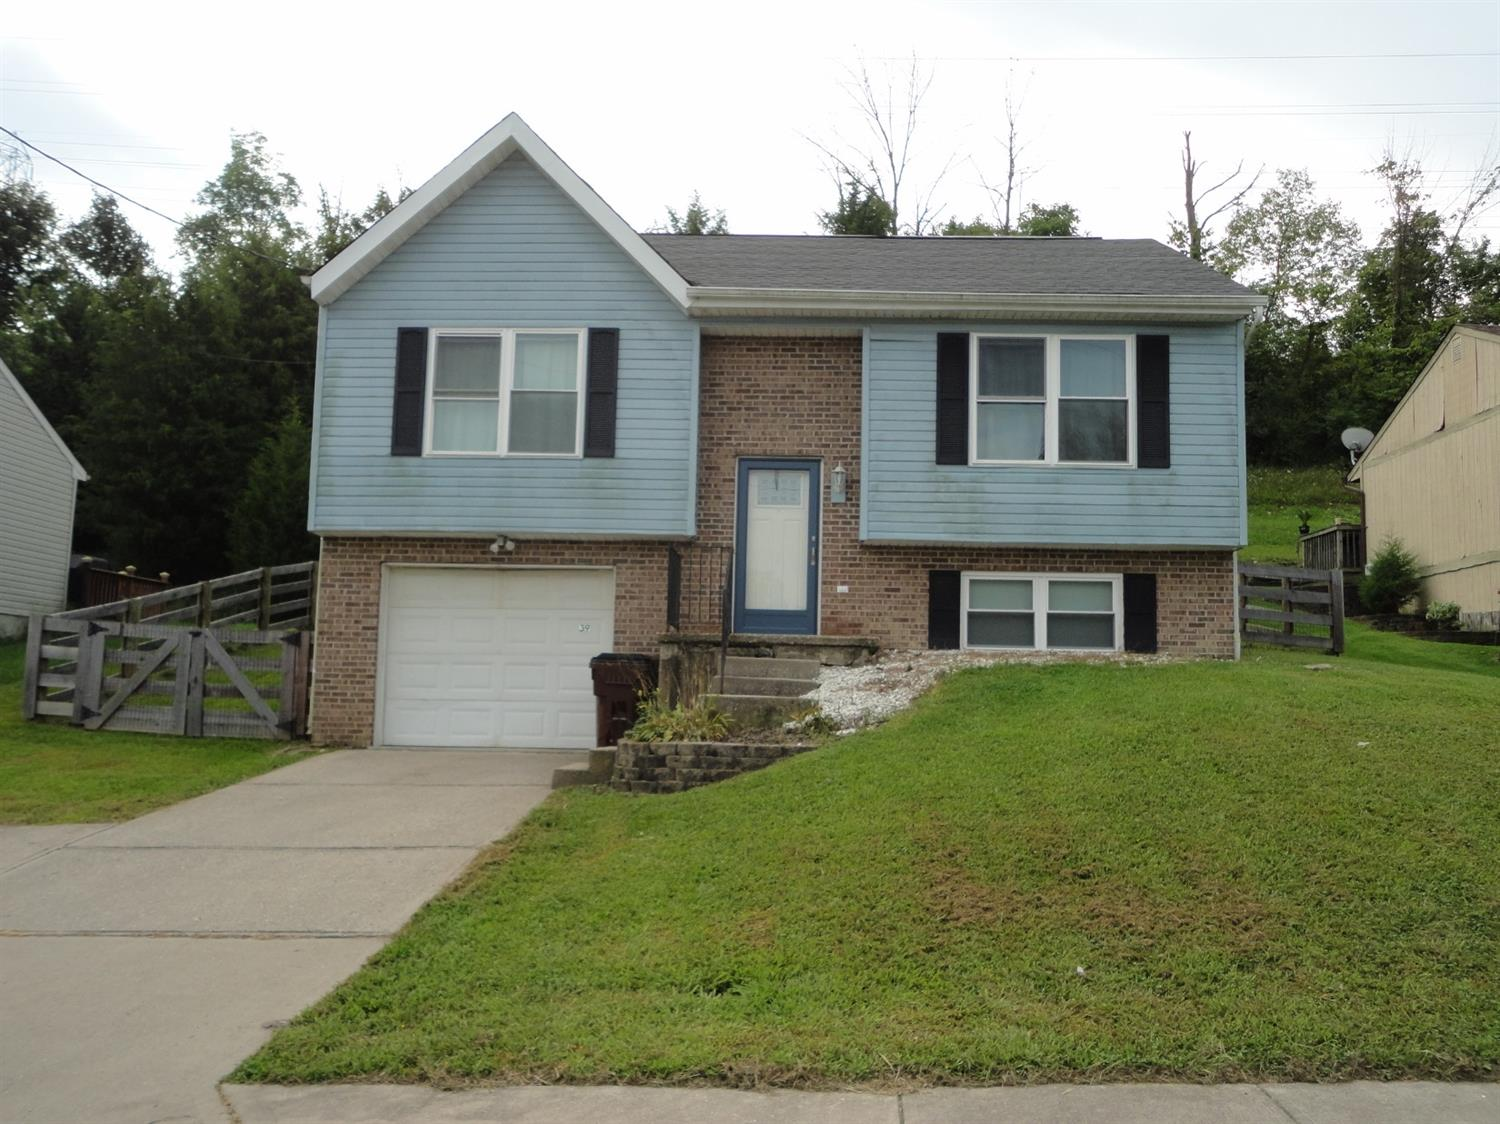 Property for sale at 39 Timberline Court, Cleves,  Ohio 45002